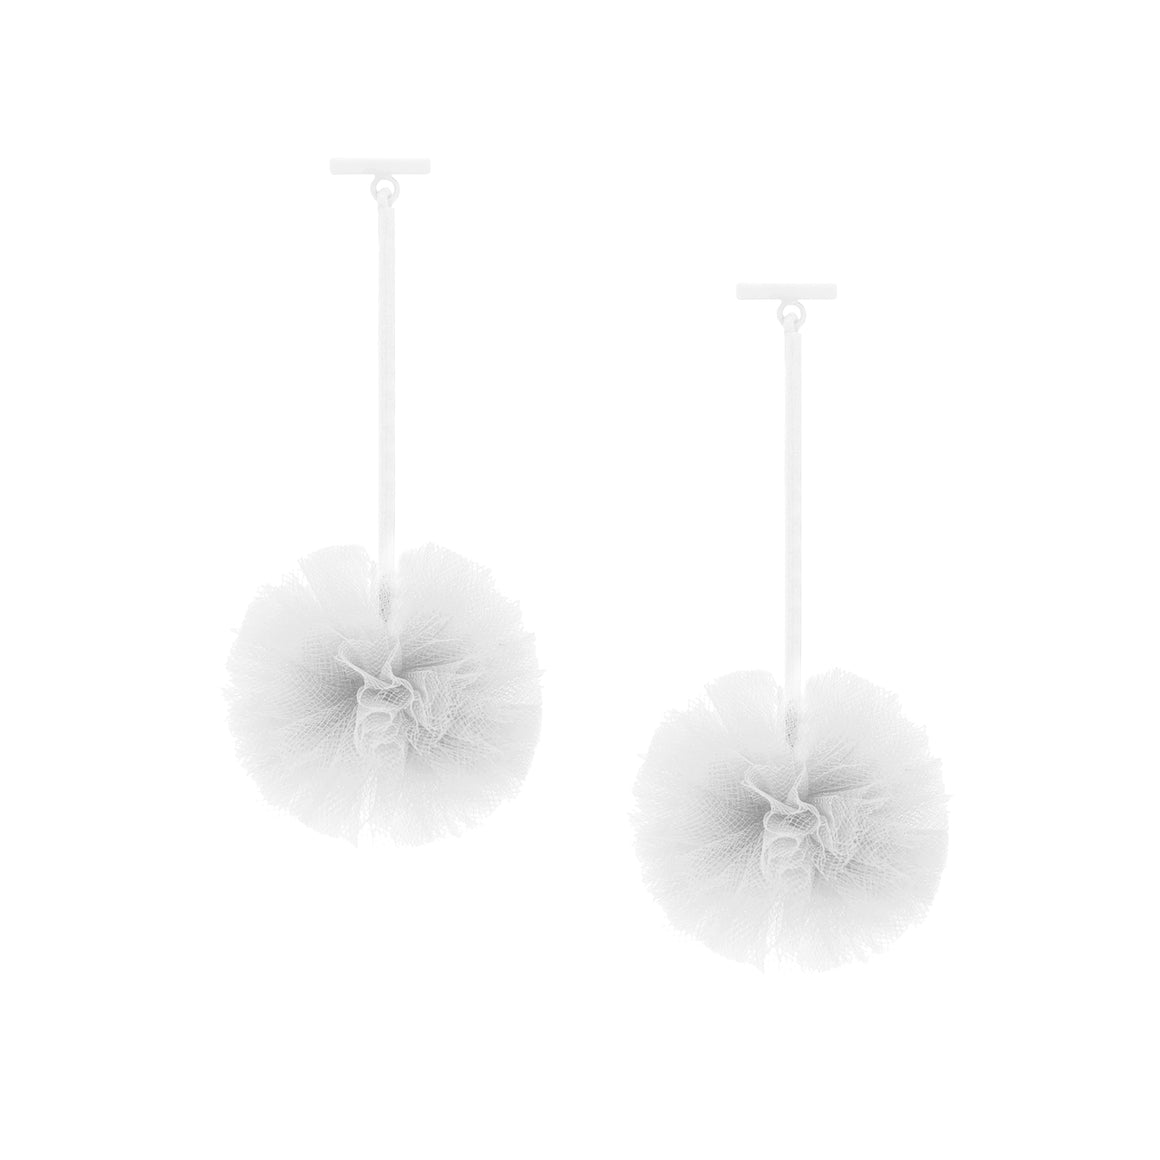 "White 1"" Tulle Pom Pom T Bar Earrings, Earrings, Tuleste, Tuleste"